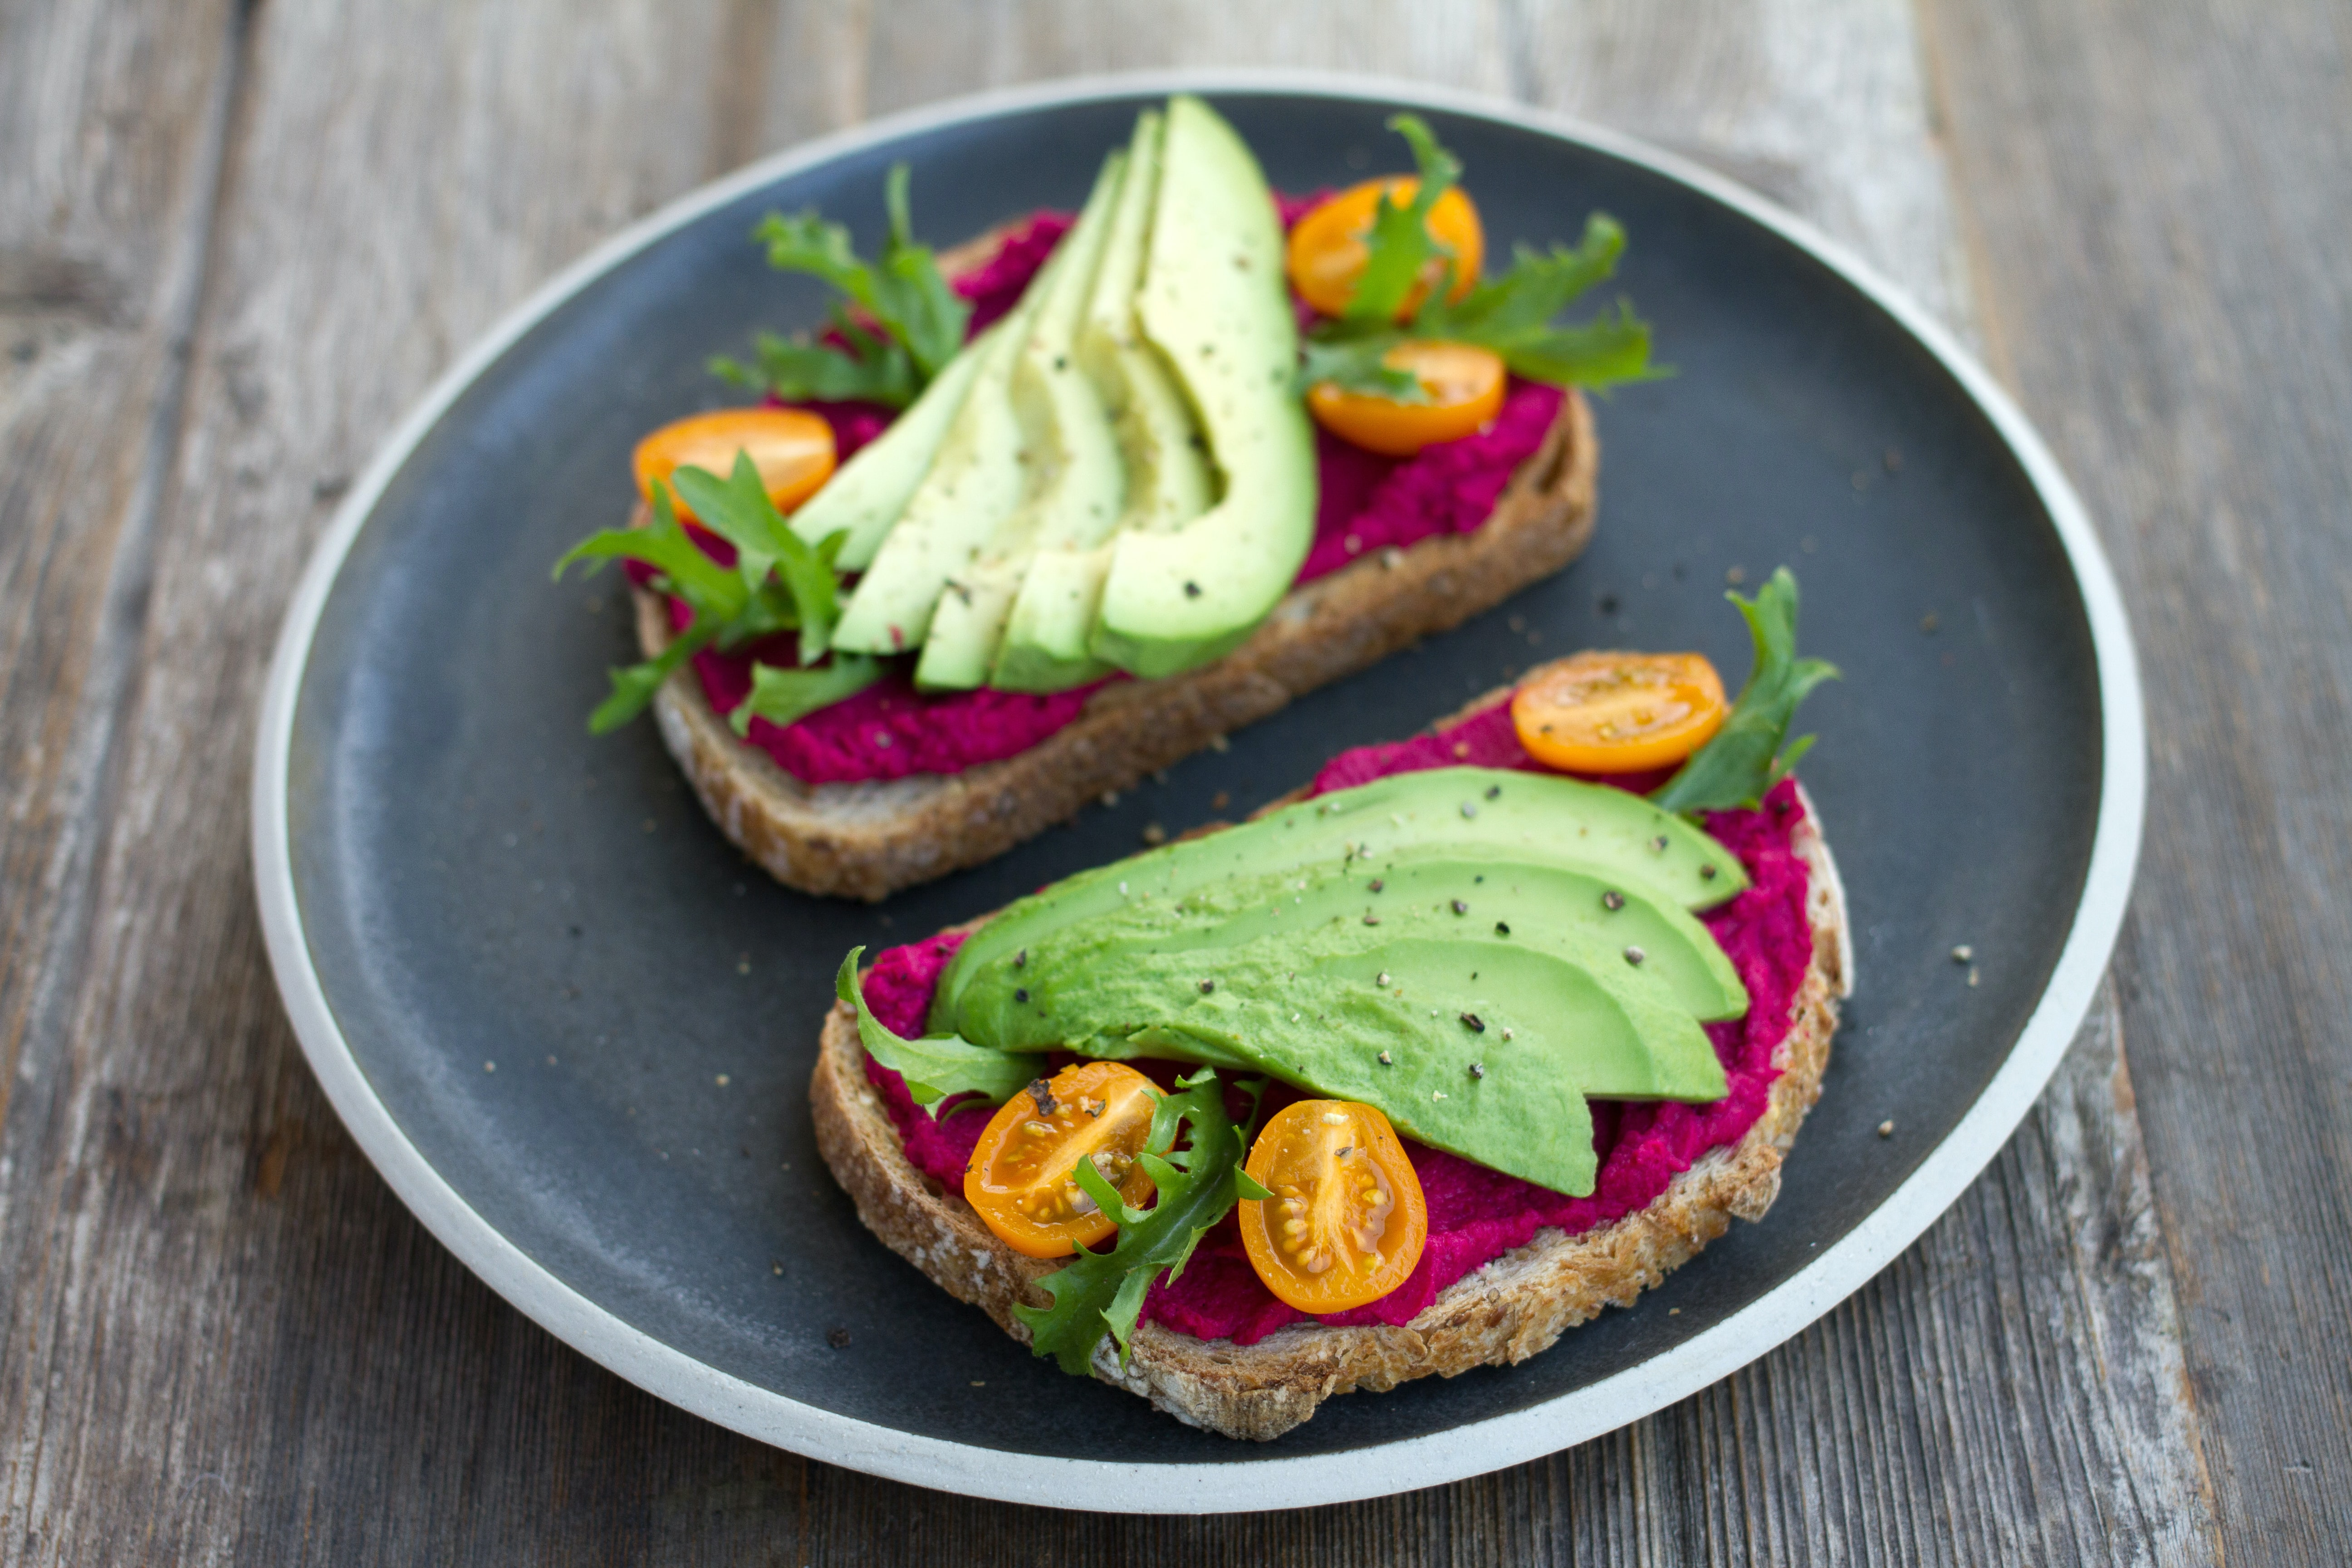 two sliced breads with avocado on top